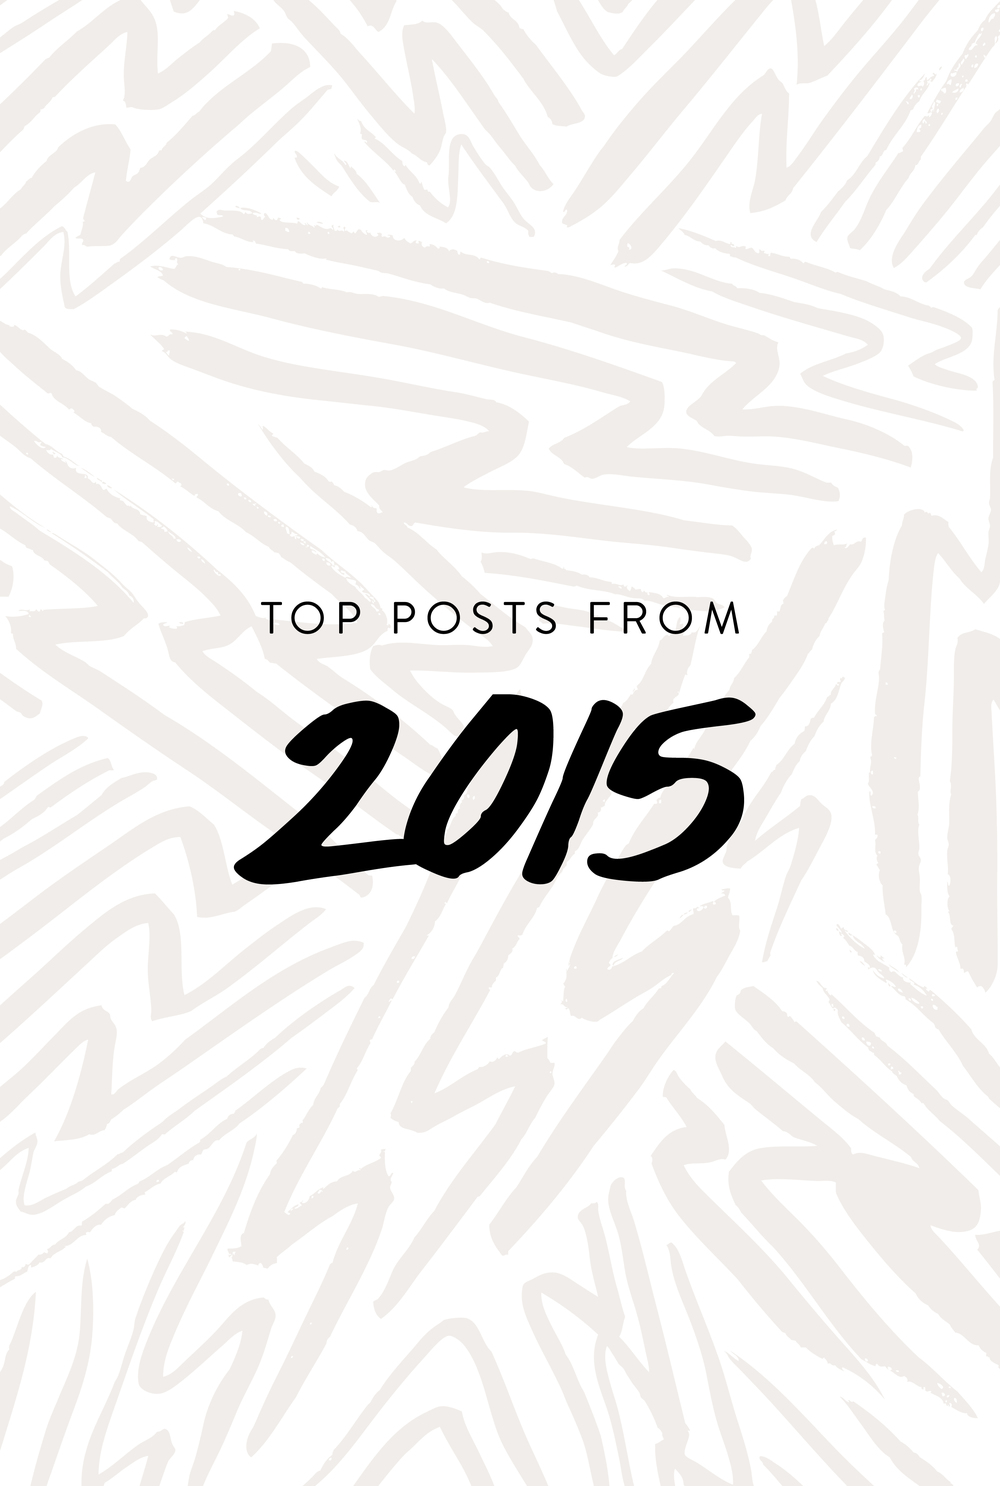 The Top Posts From Jaymee Srp in 2015